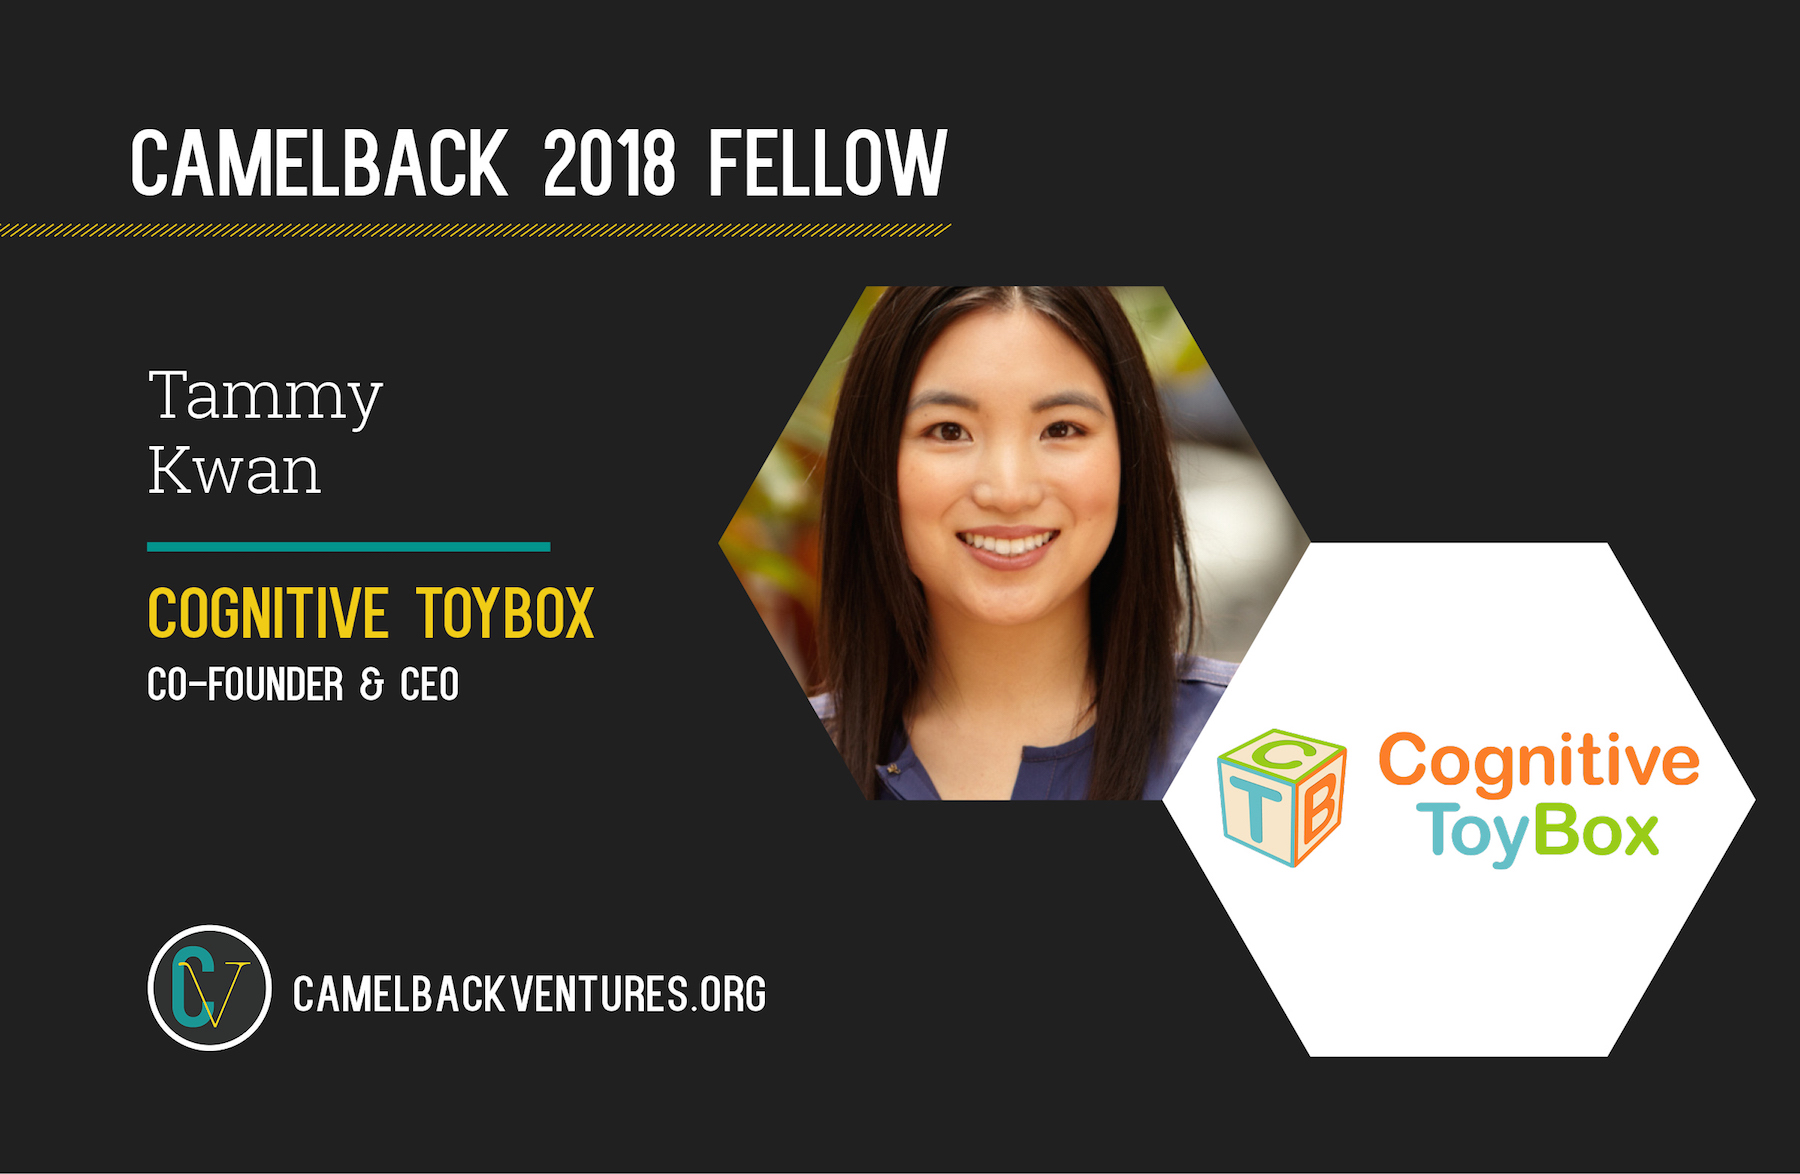 2018camelbackfellows_tammy.jpg